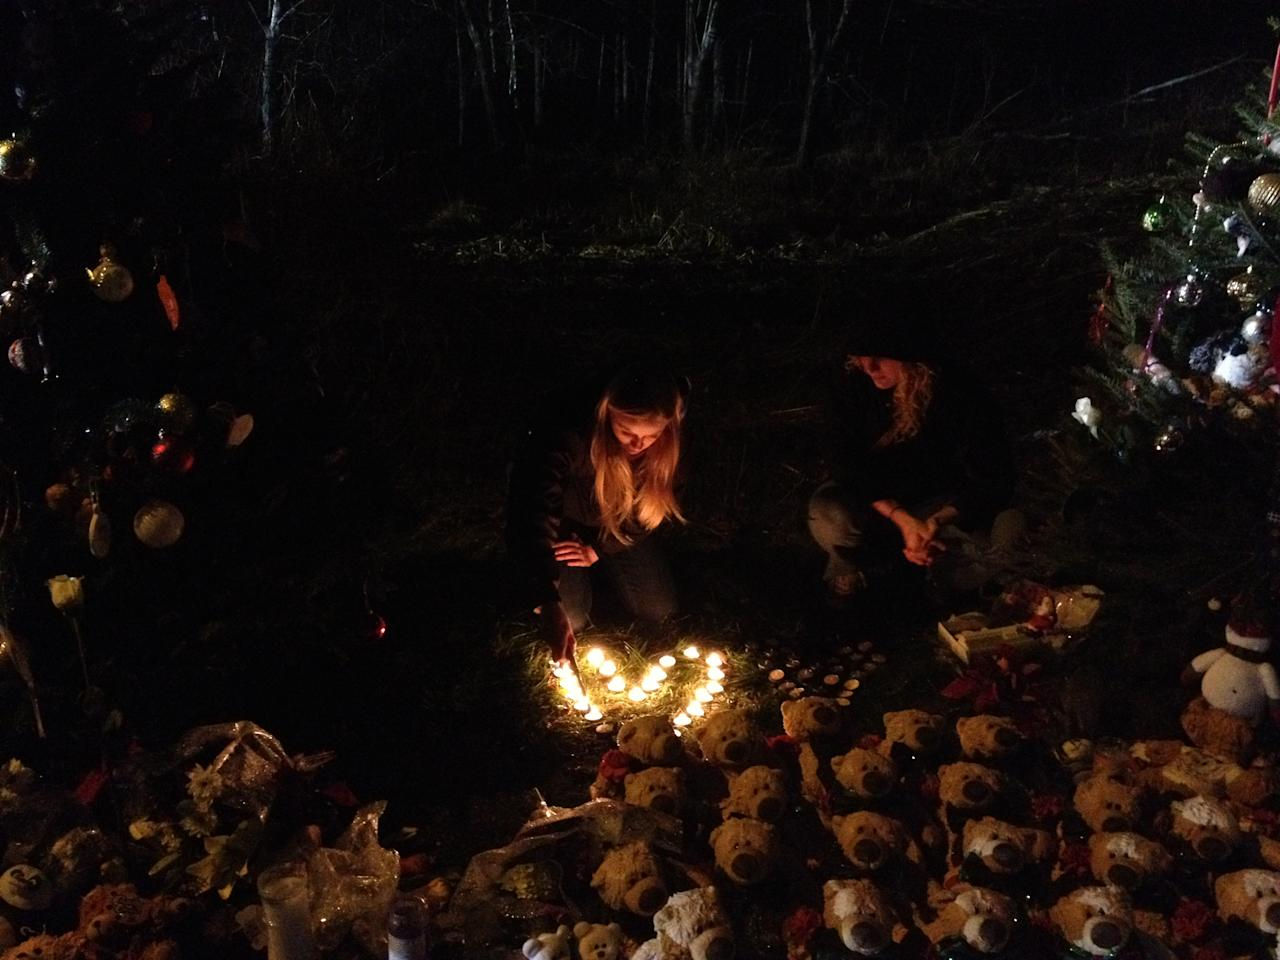 <p>A girl lights candles displayed in shape of heart near the entrance to Sandy Hook Elementary School in Newtown, Conn., Dec. 15, 2012. (Dylan Stableford/Yahoo News) </p>